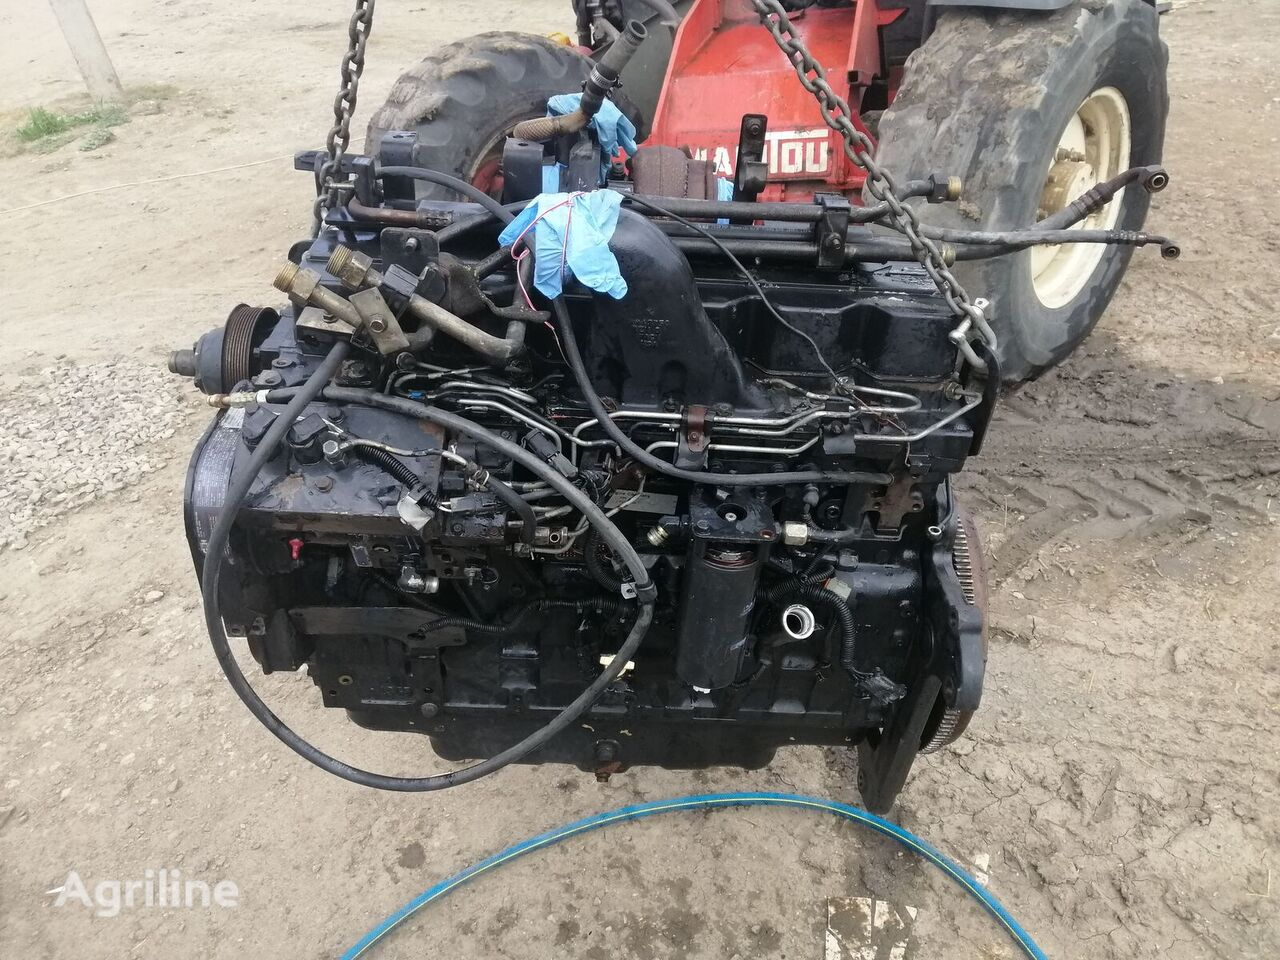 CASE IH MX 285 engine for CASE IH MX 285 tractor